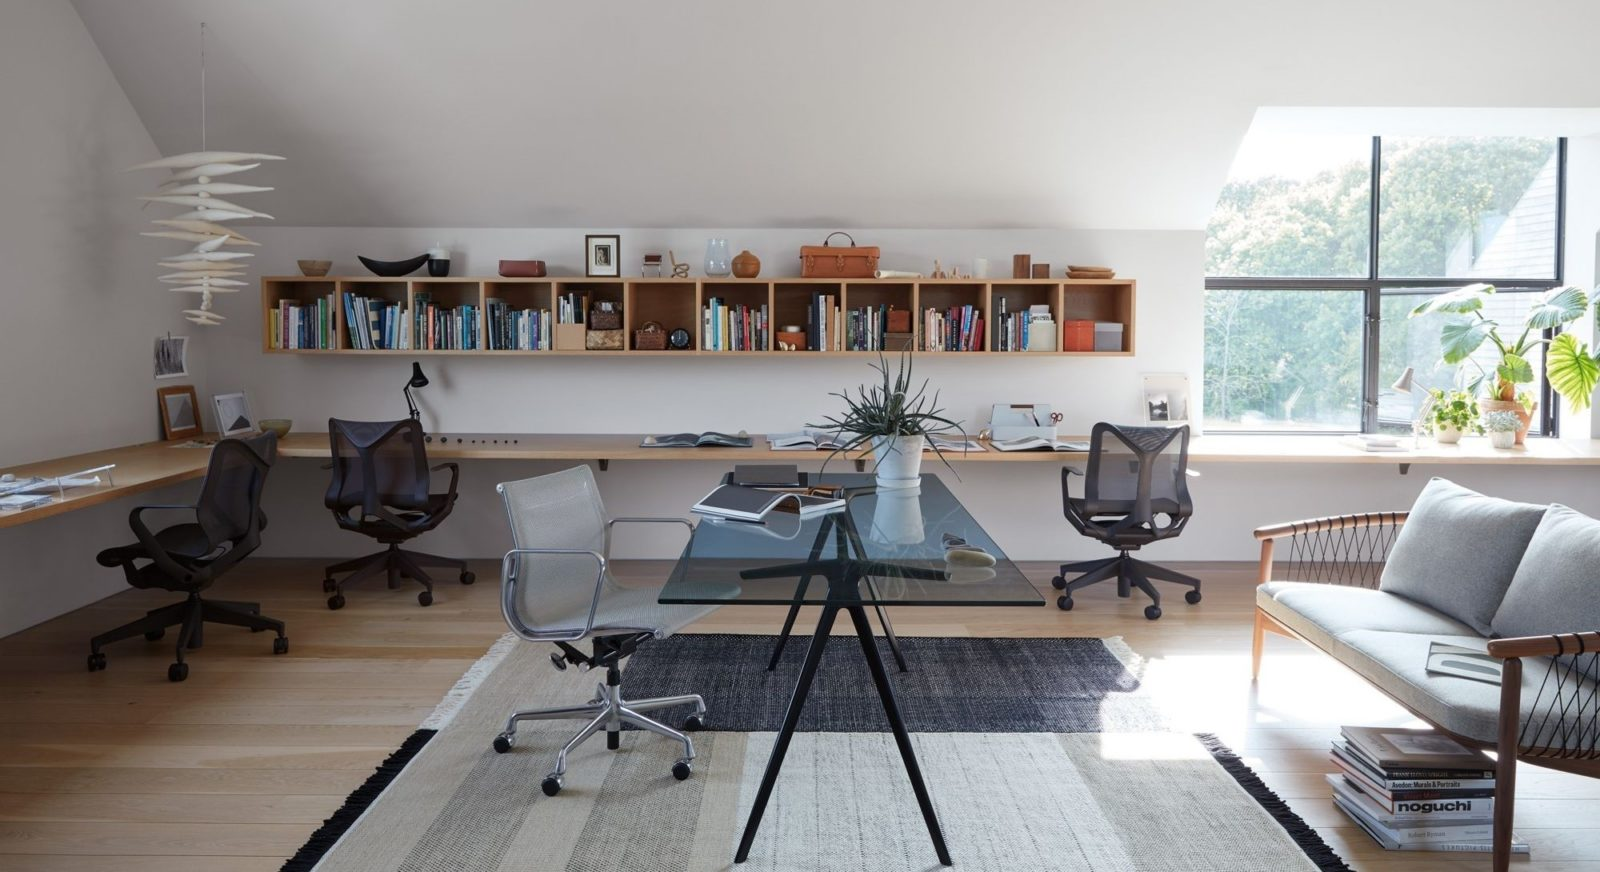 An image of a home office with Cosm chairs and a Geiger Crosshatch Sofa.